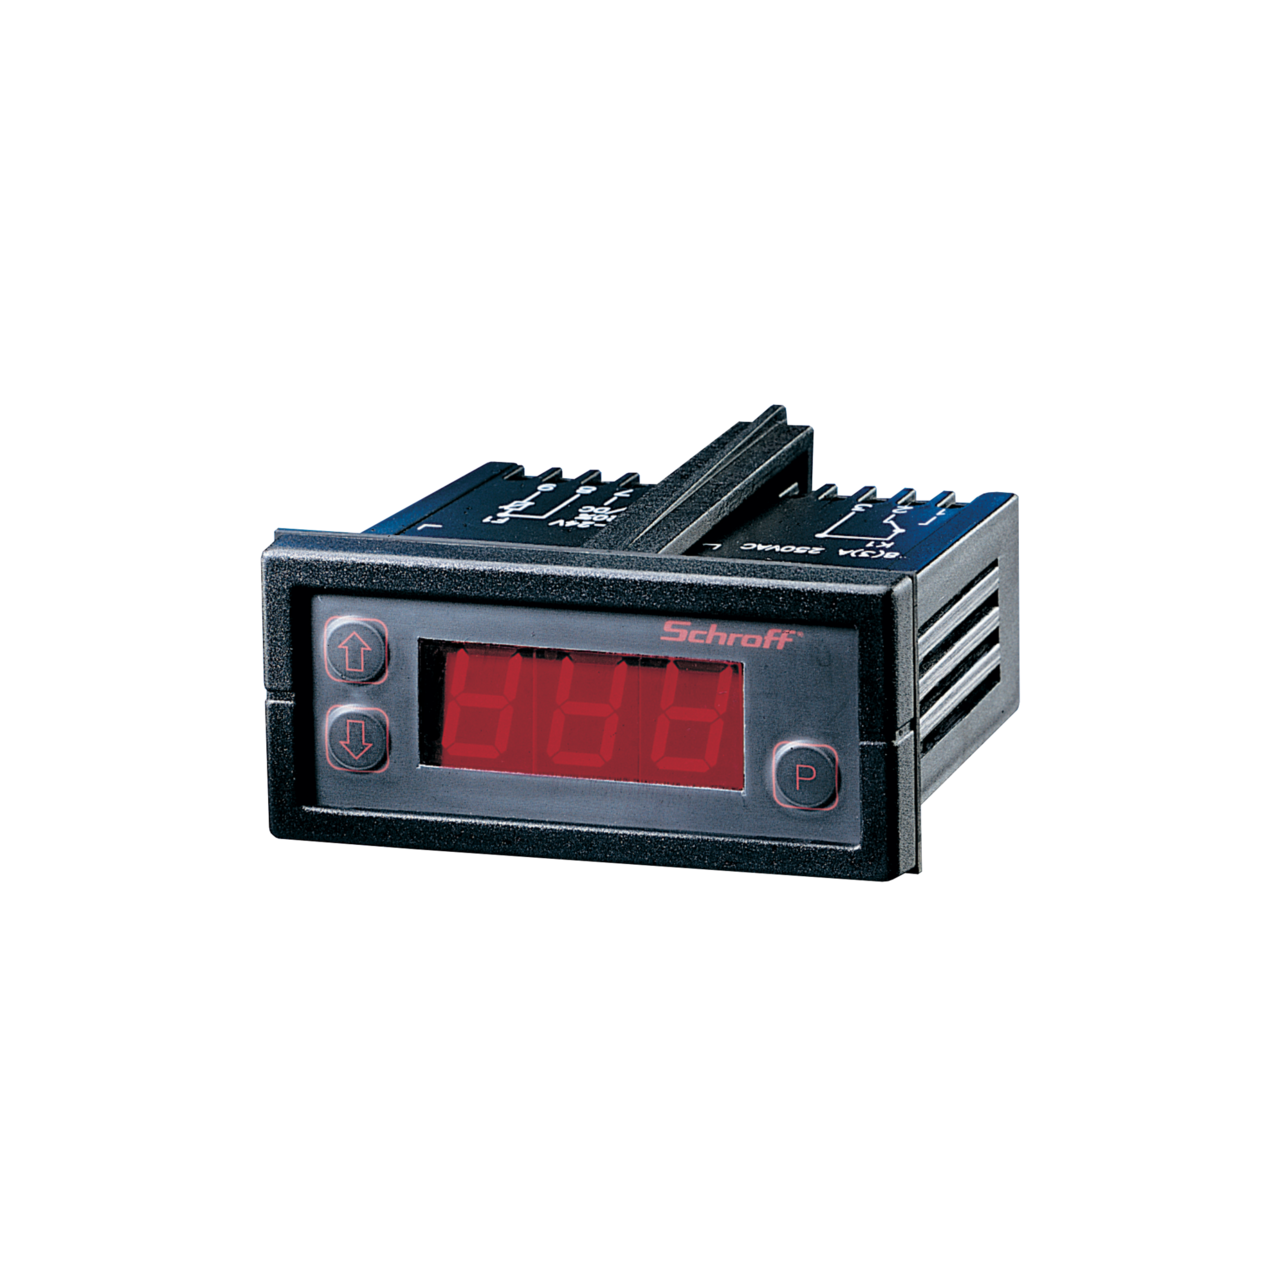 Image for Thermostat with digital display from Schroff - North America